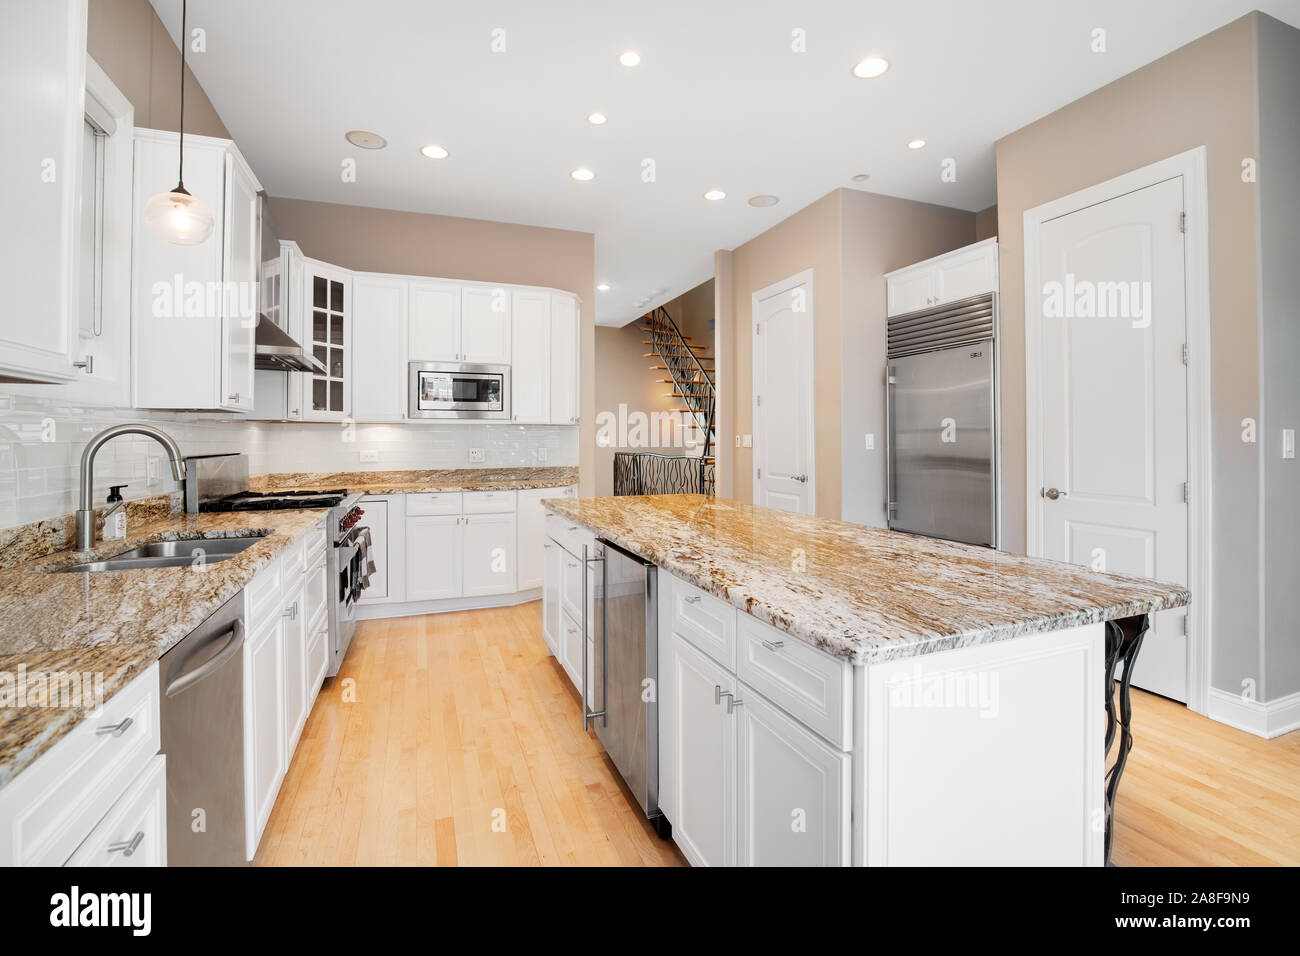 A Large White Kitchen In A Luxurious Home With Wood Floors Stainless Steel Appliances Granite And White Cabinets Stock Photo Alamy